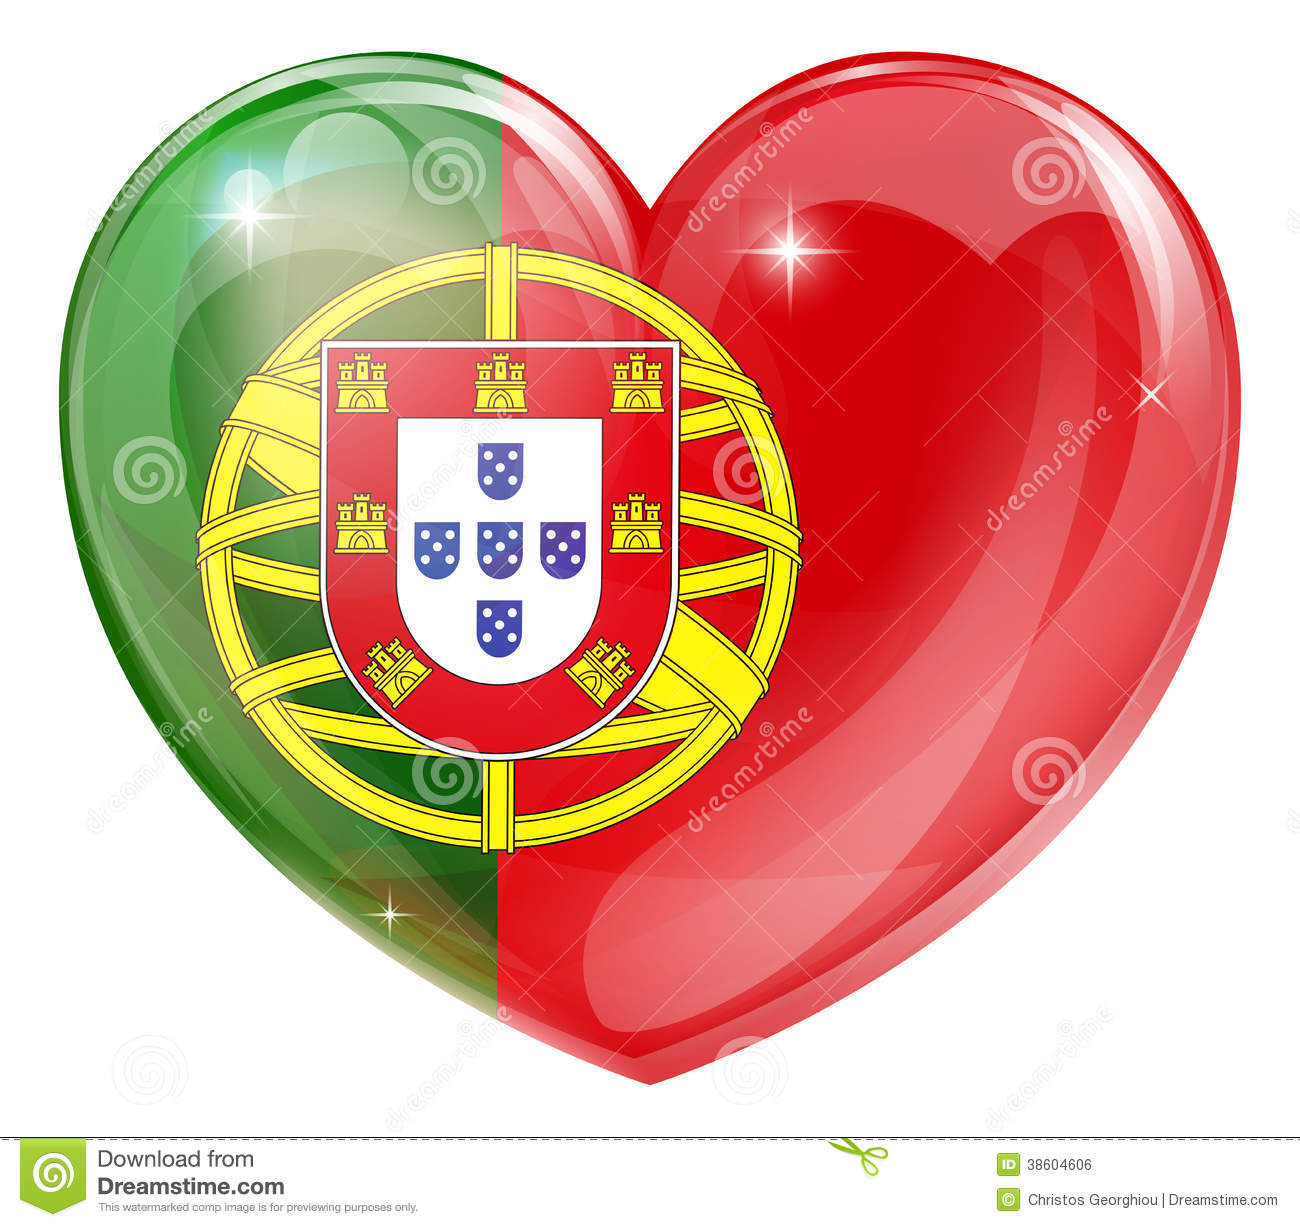 Love Wallpapers In Portuguese : Love Heart Stock Photos Images Royalty Free Love Heart Auto Design Tech